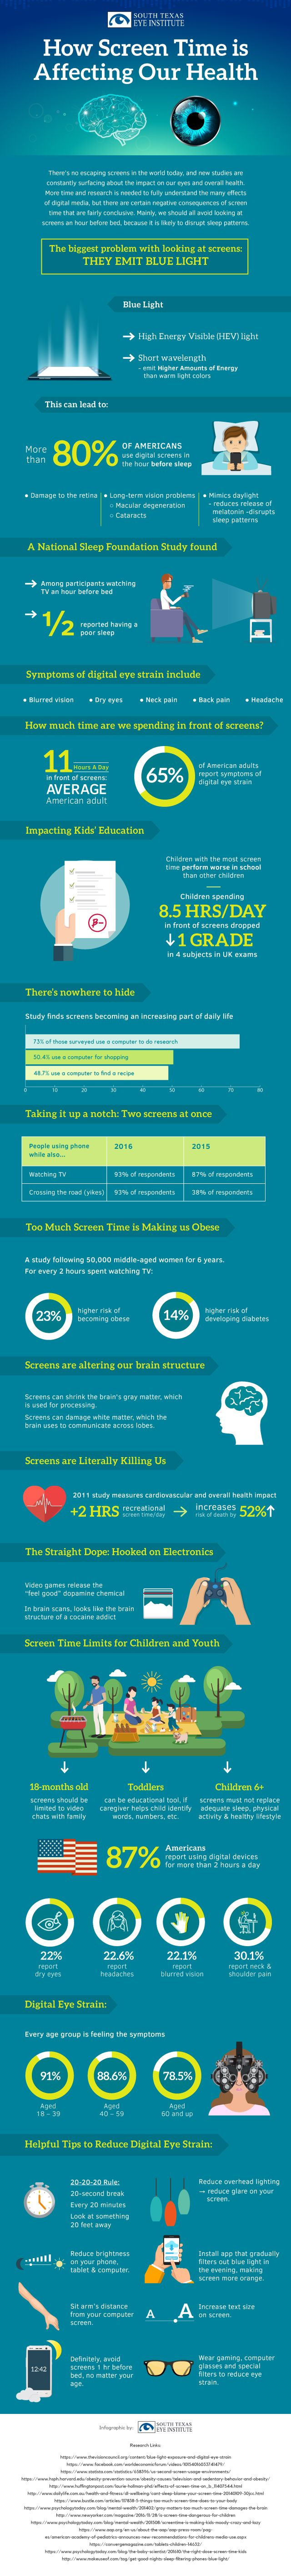 Screen use is actually impacting our brain structure – altering grey and white matter, which the brain uses for processing and communicating across lobes.